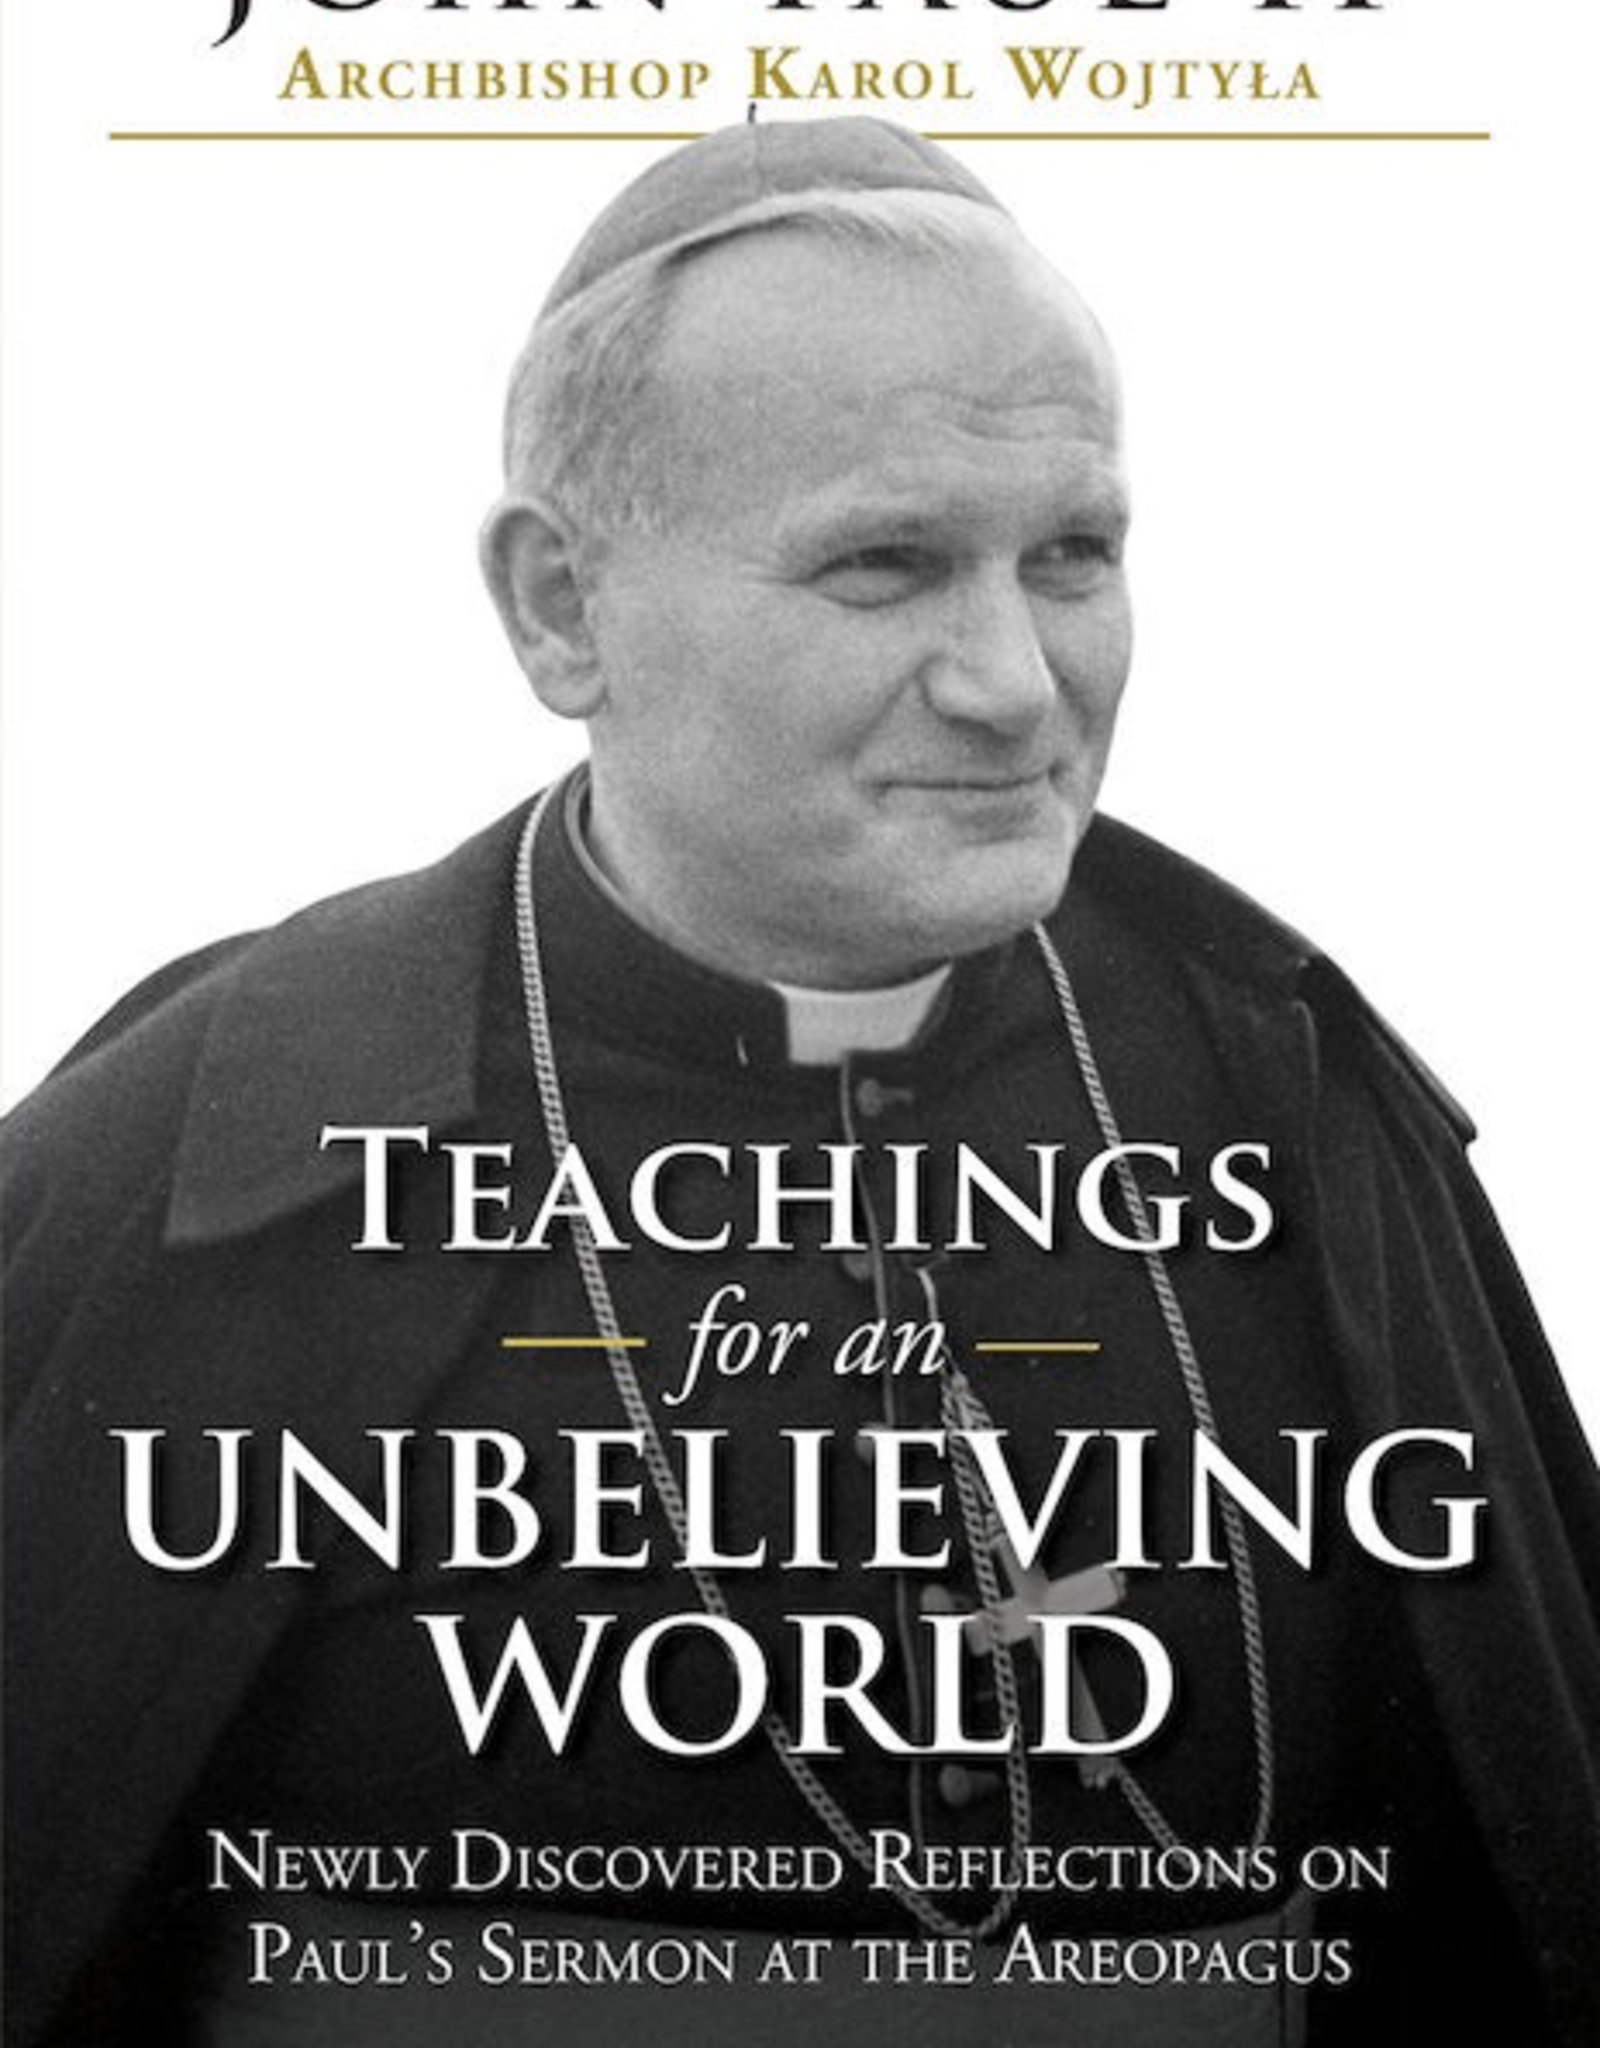 Ave Maria Press Teachings for an Unbelieving World, by St. John Paul II (hardcover)